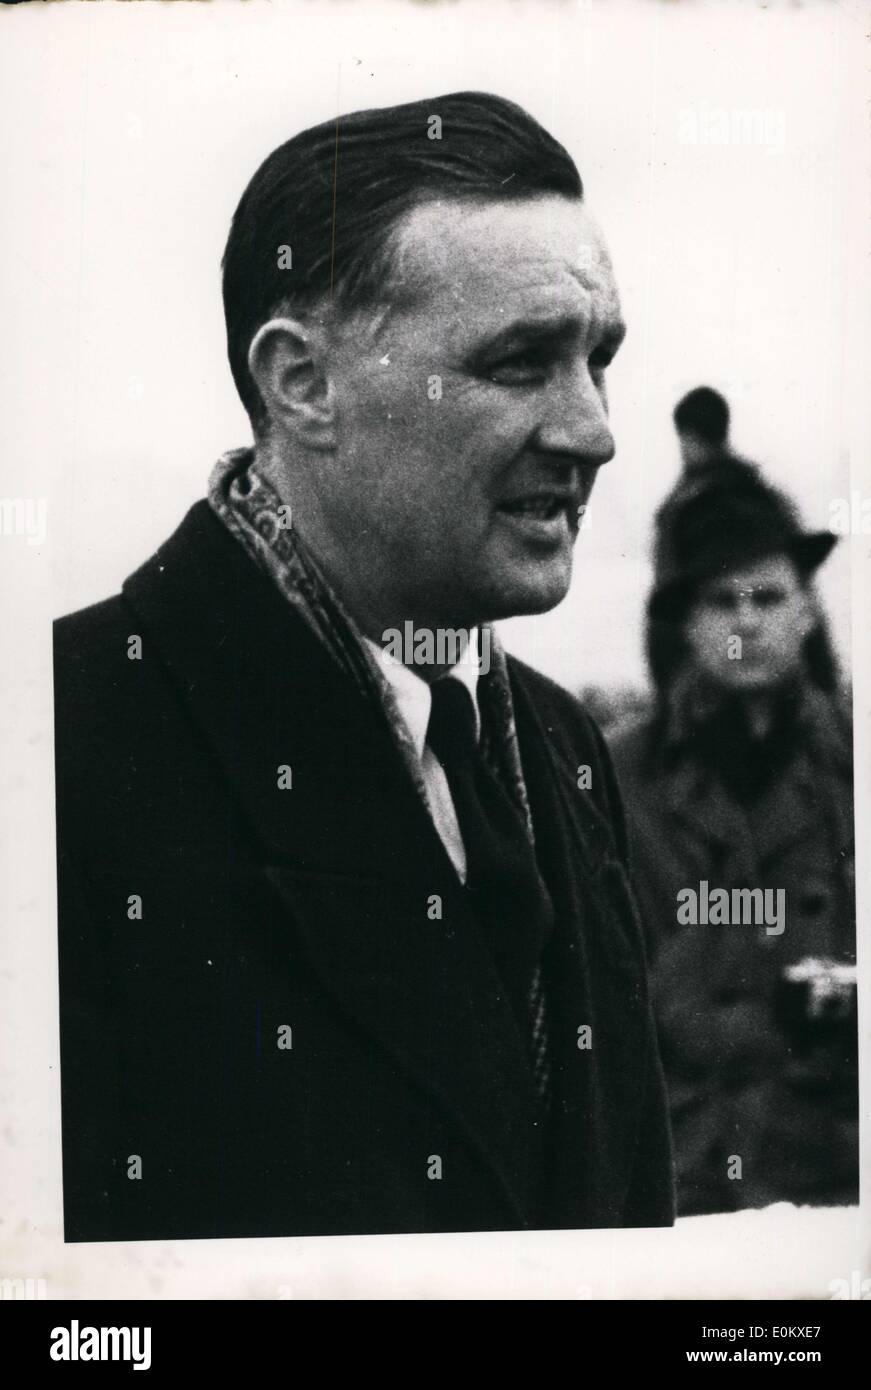 Jun. 04, 1952 - Captain Adolf Dickfeld, who fought in World War 2 and was known for his fairness, was invited to the US by veterans for a lecture tour. He would later guest in Spain. He fought in North Africa. - Stock Image